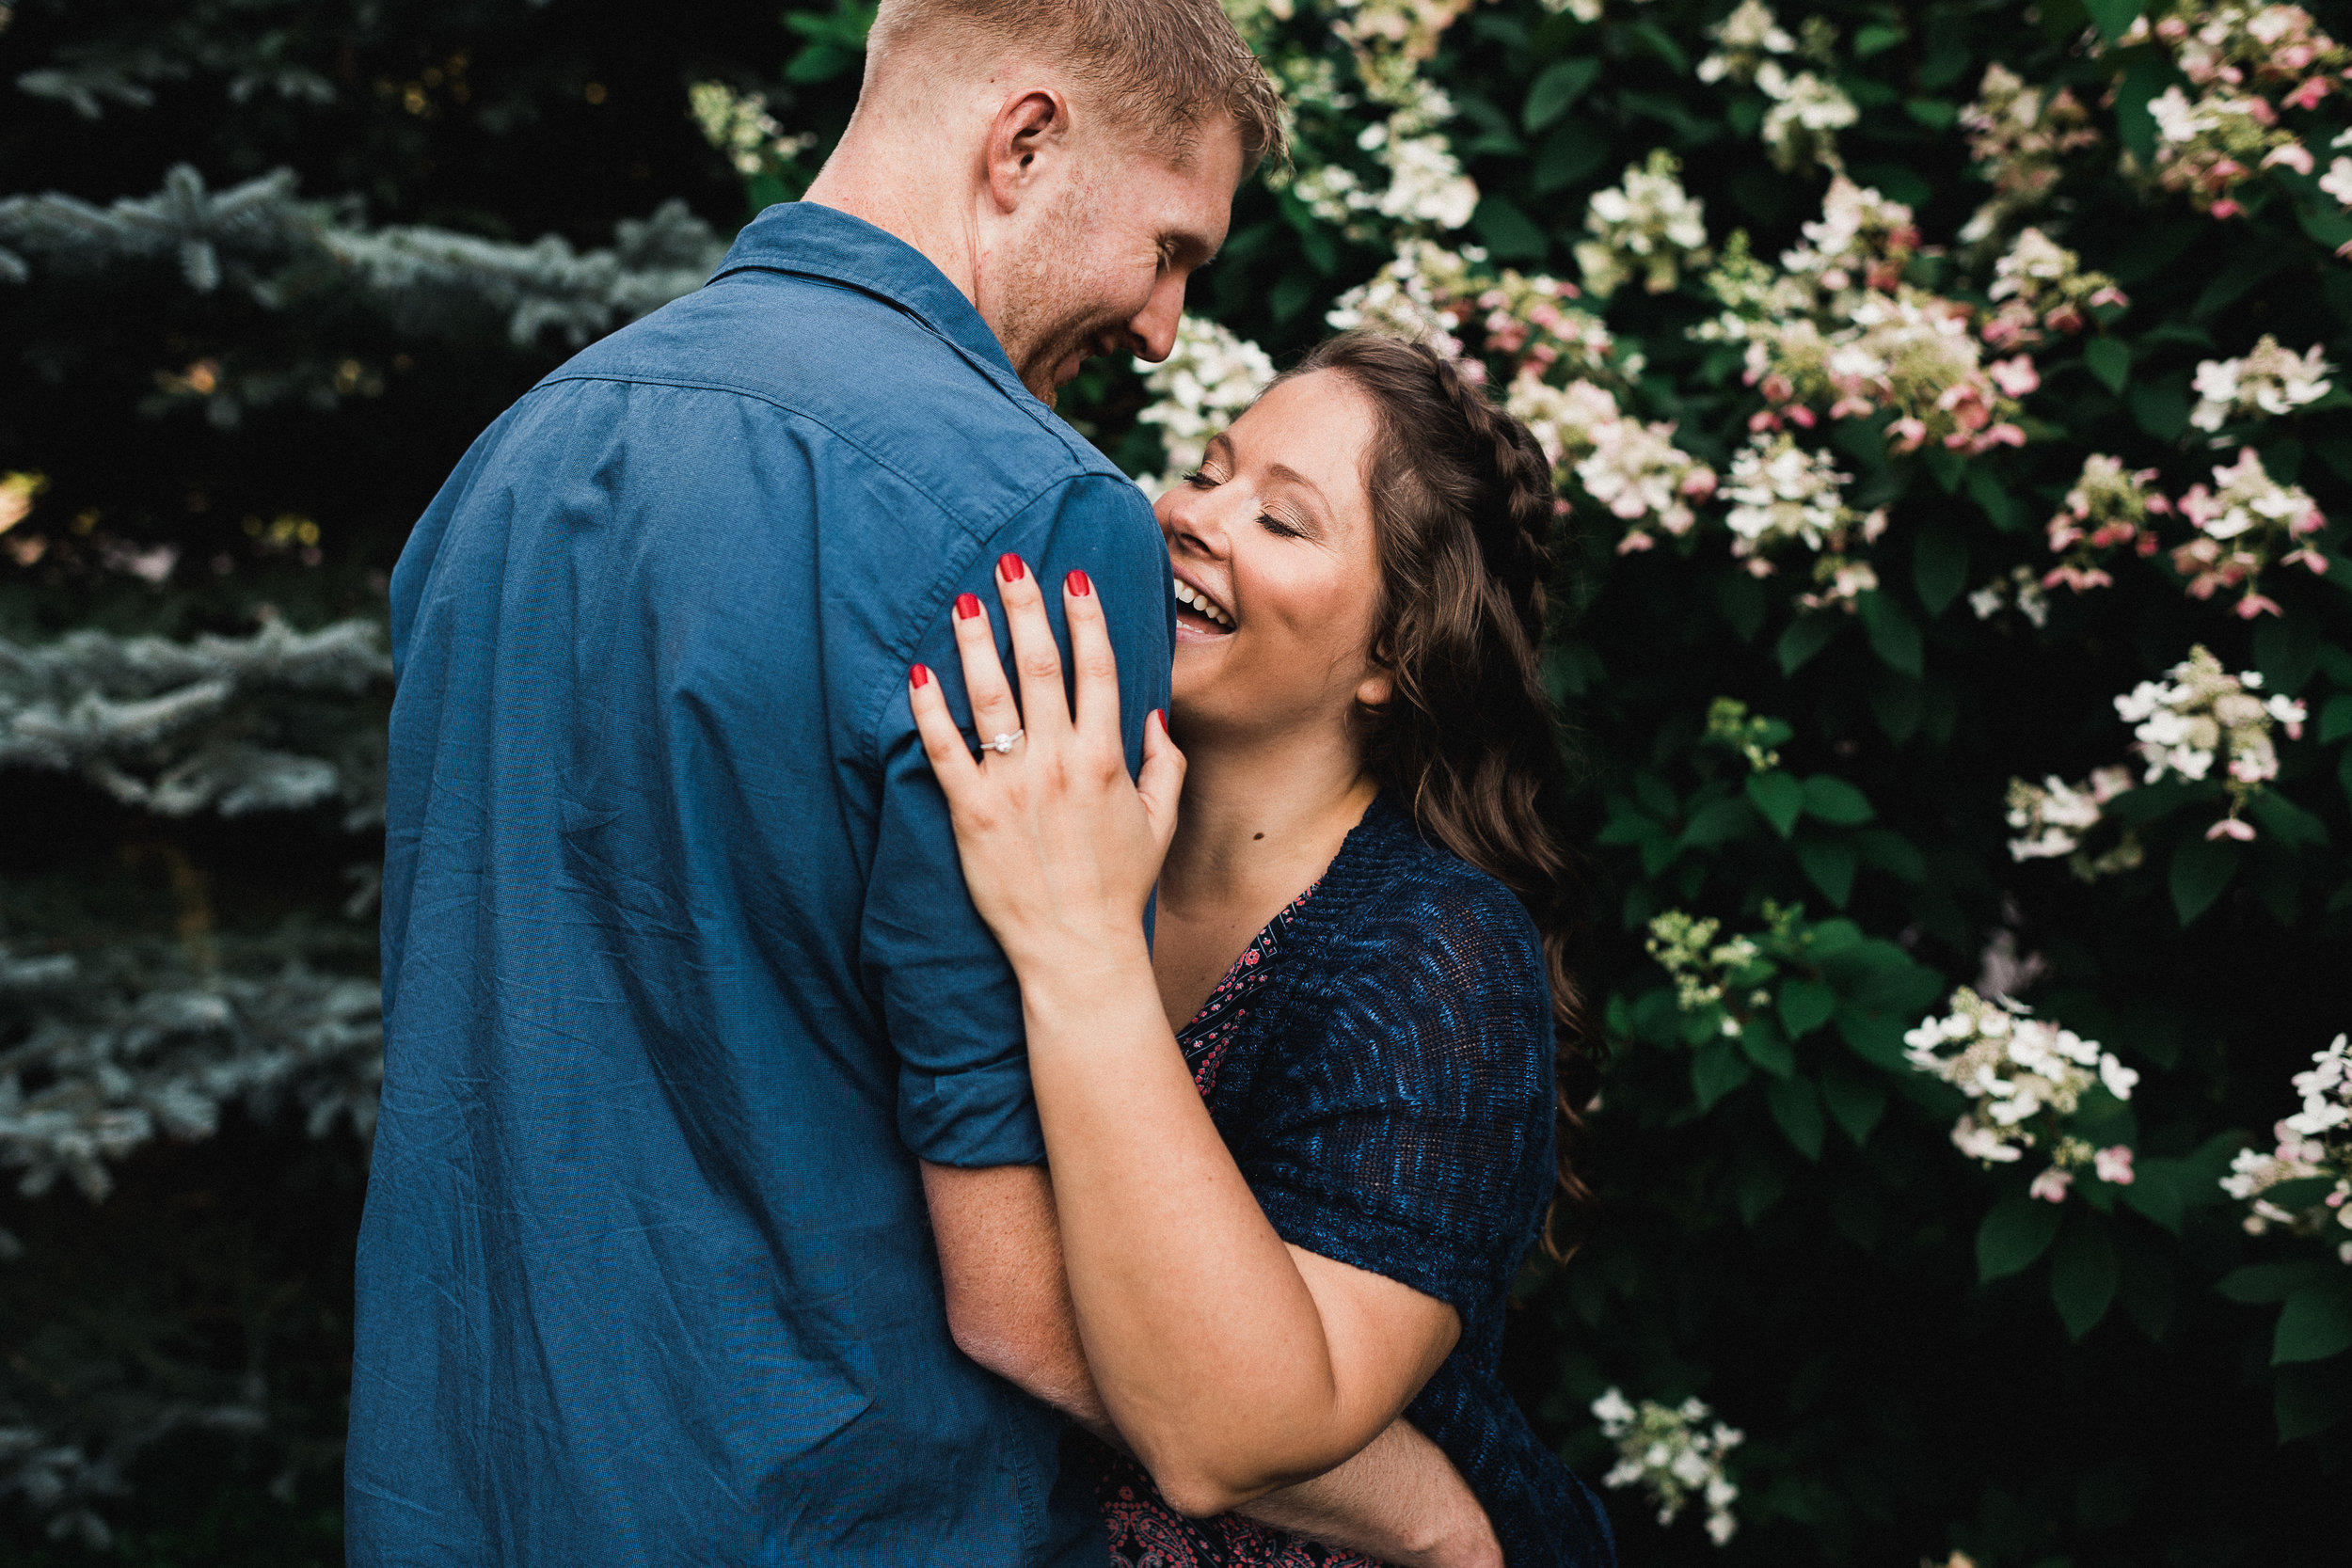 Woman laughs with her eyes closed as she holds on to her fiance.